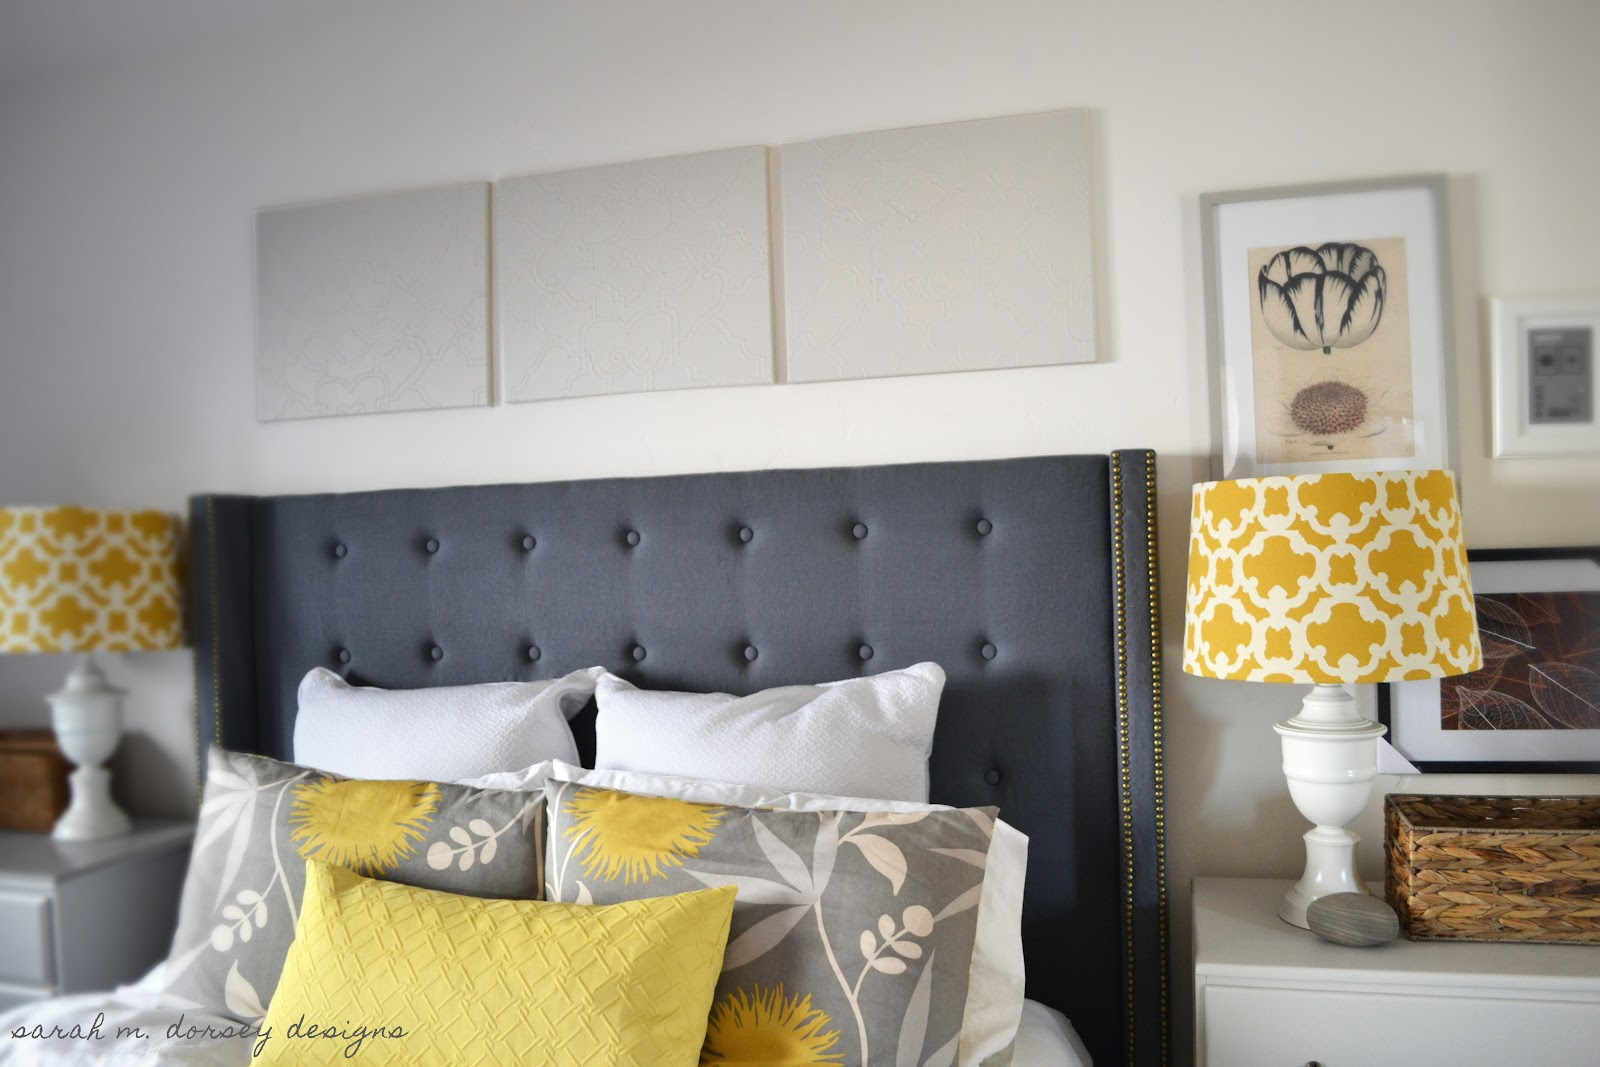 Sarah m dorsey designs painted puffy paint design canvas for Painted on headboard